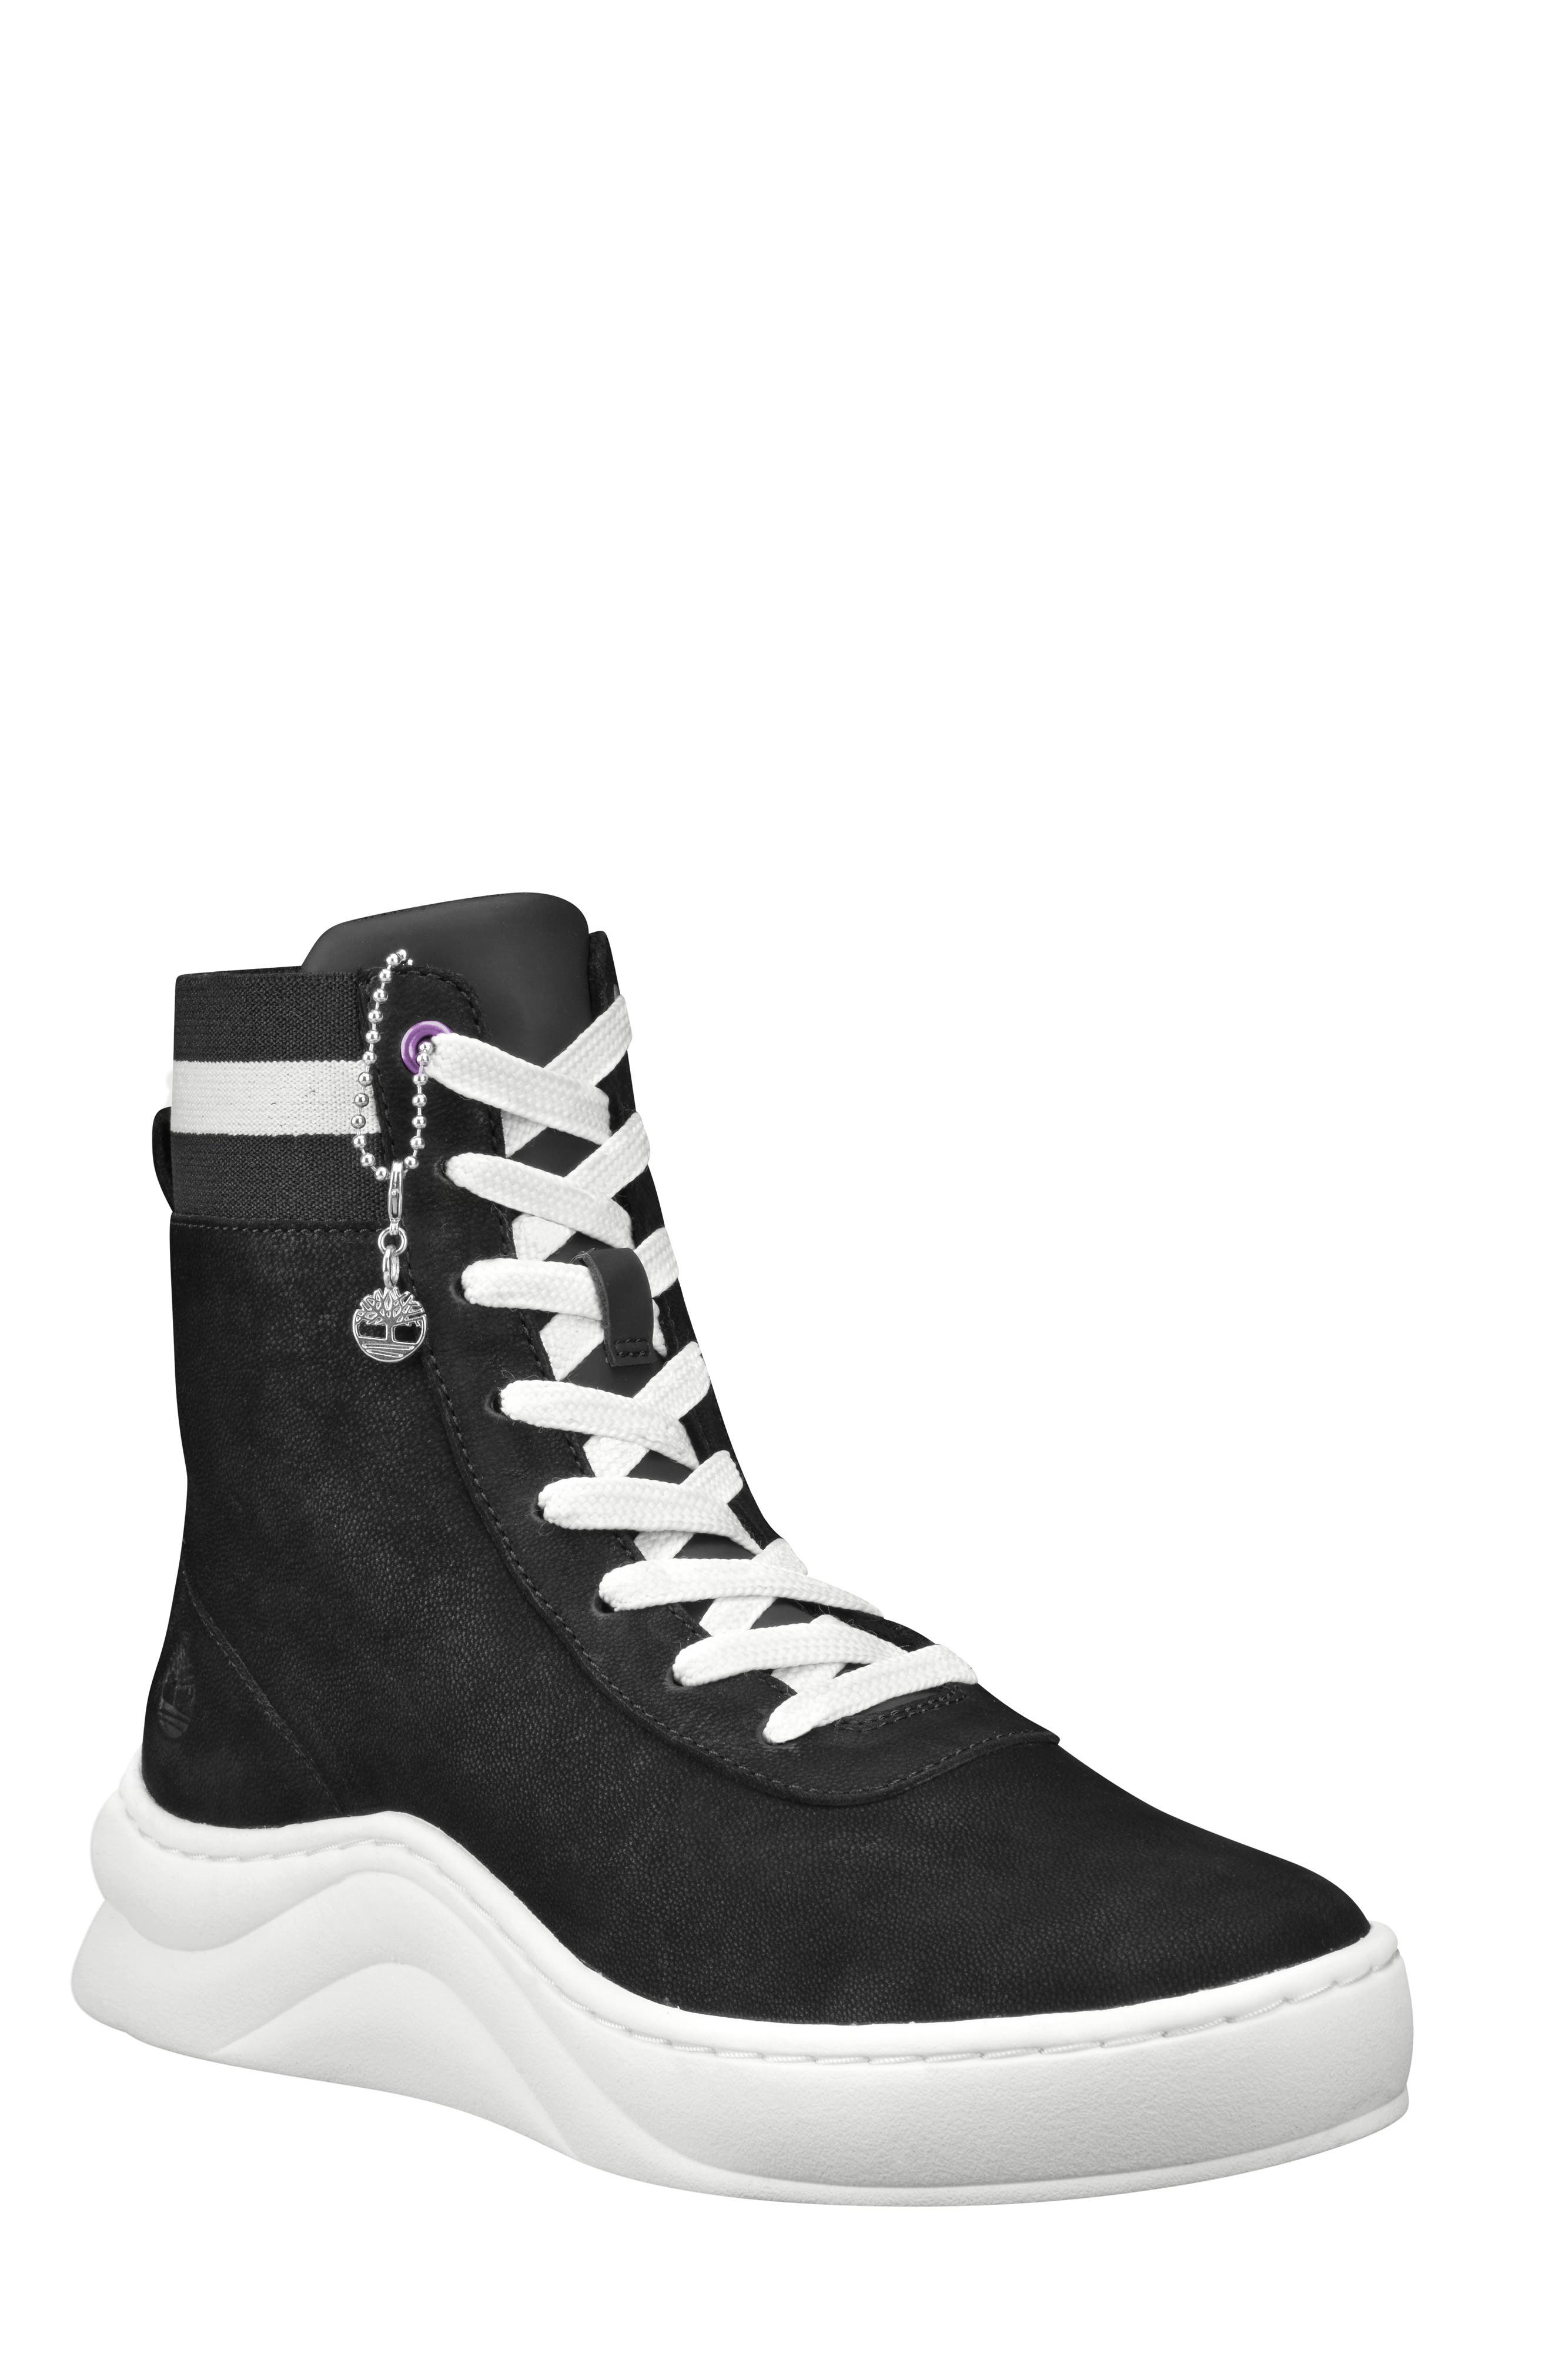 Image of Timberland Ruby Ann Leather Sneaker Boot